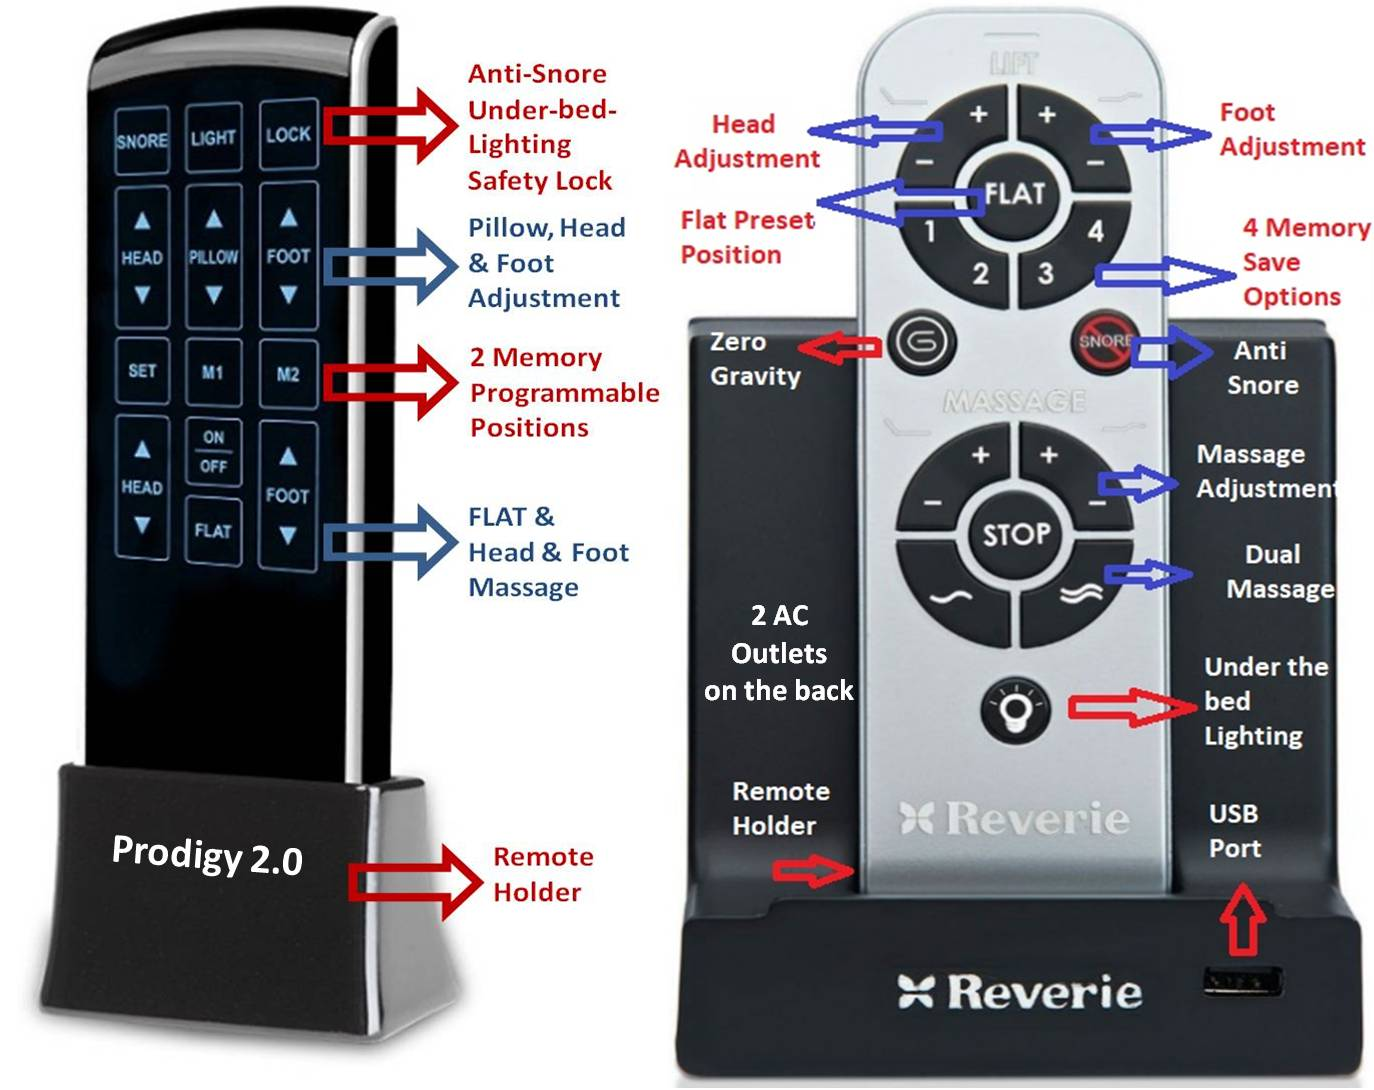 Remote Control Features Prodigy 2.0 Vs Reverie 8Q